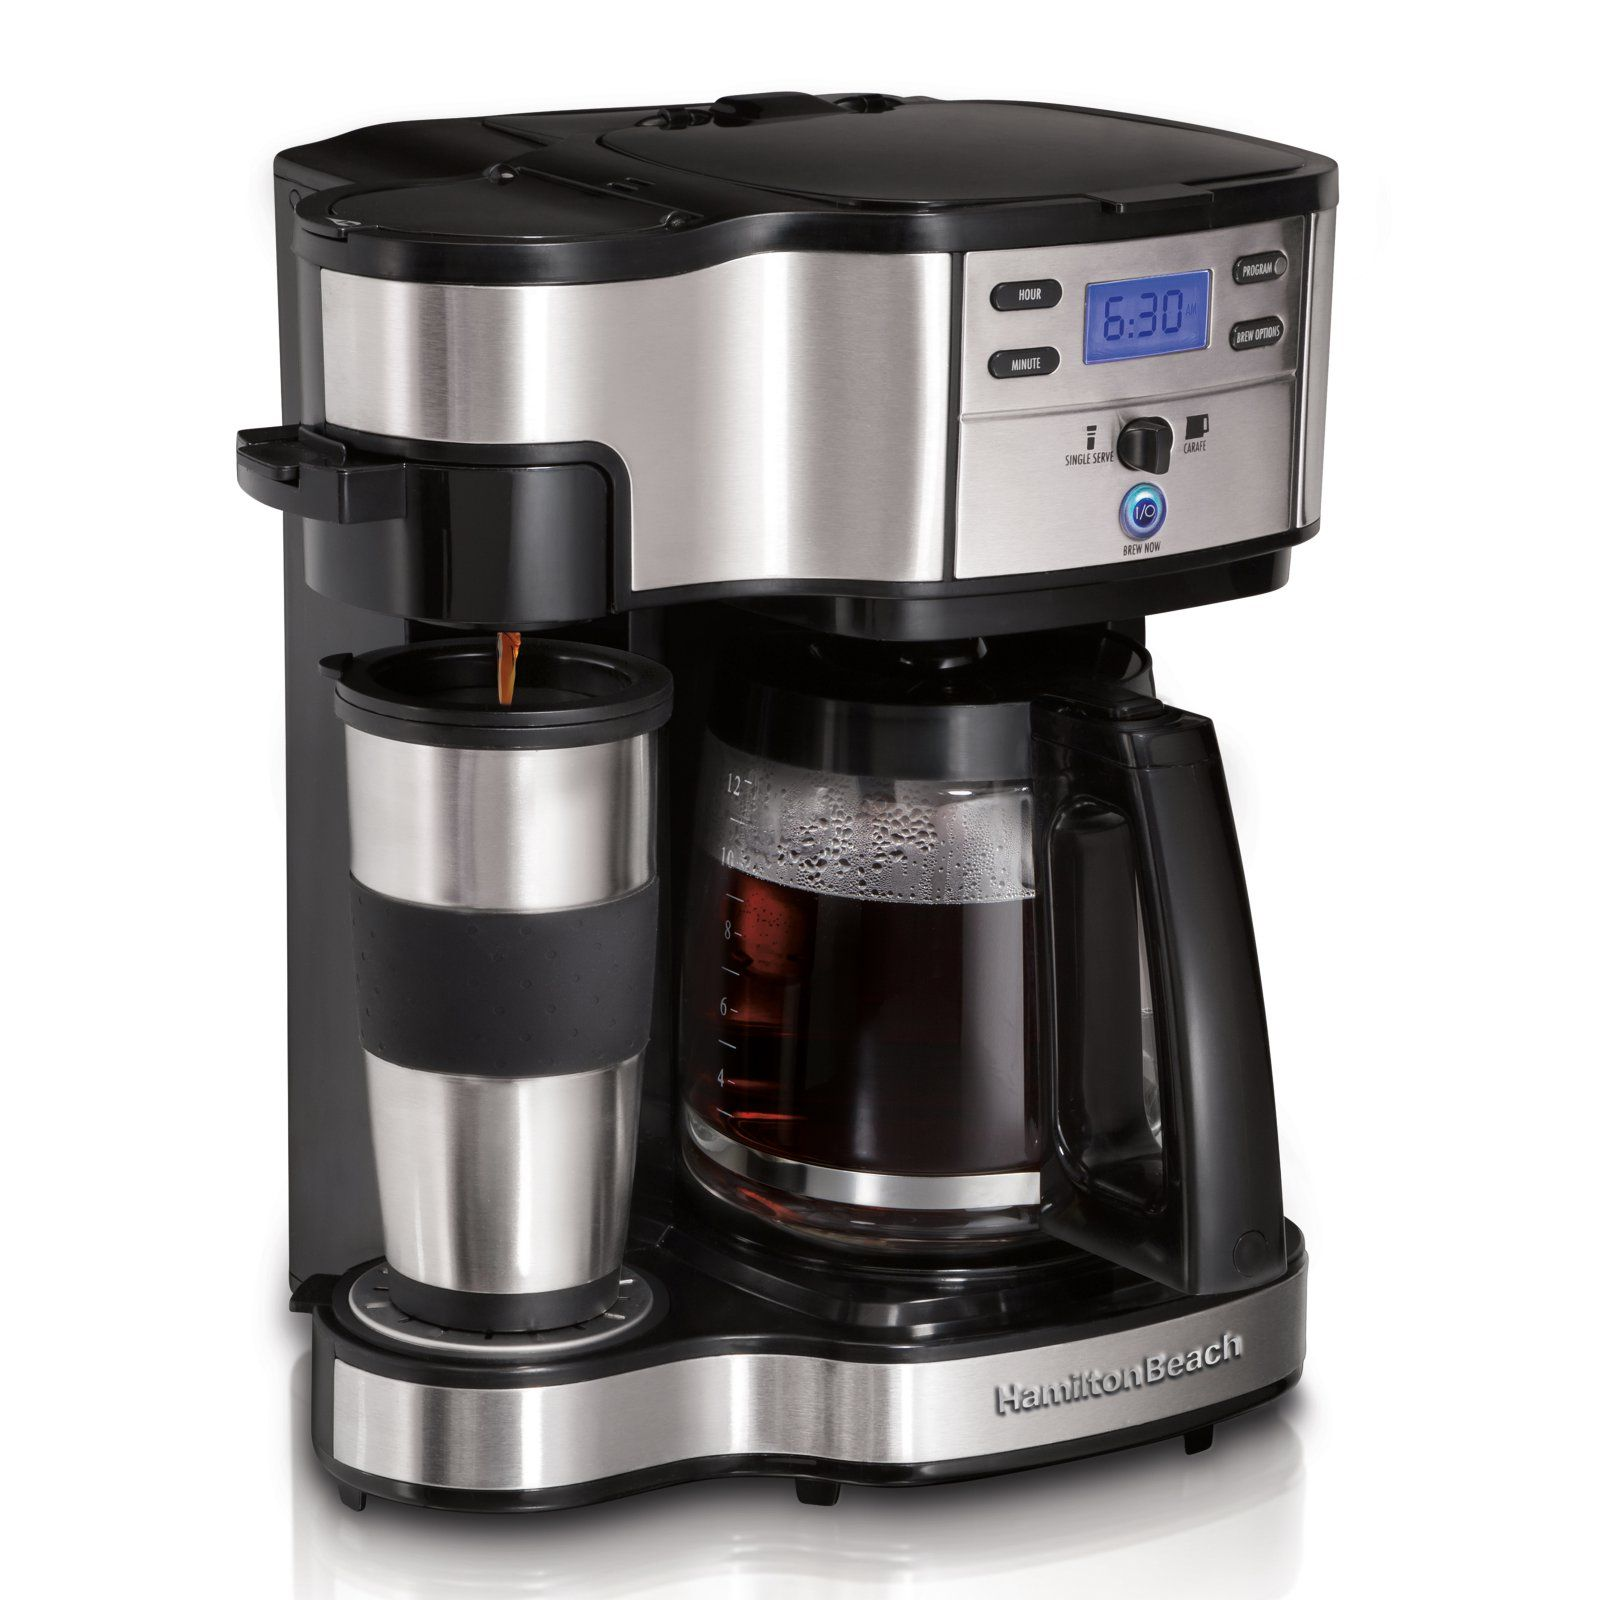 Hamilton Beach 2Way Brewer Coffee Maker Best drip